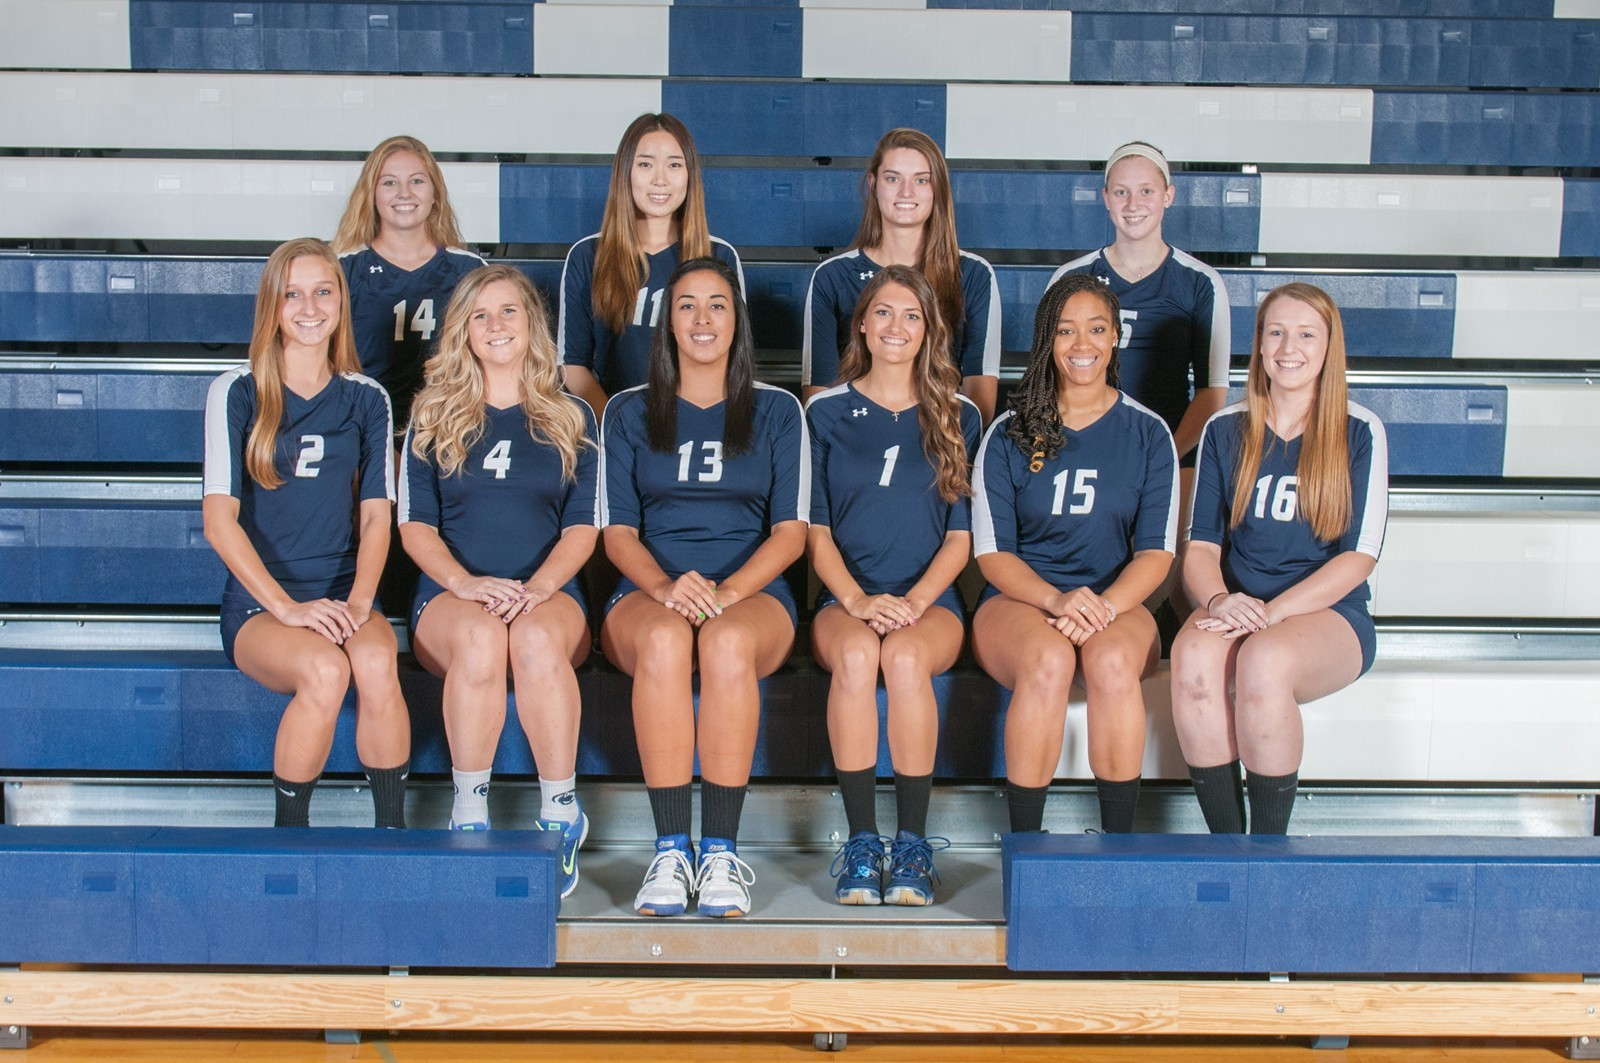 2014 Women S Volleyball Roster Penn State Berks Athletics